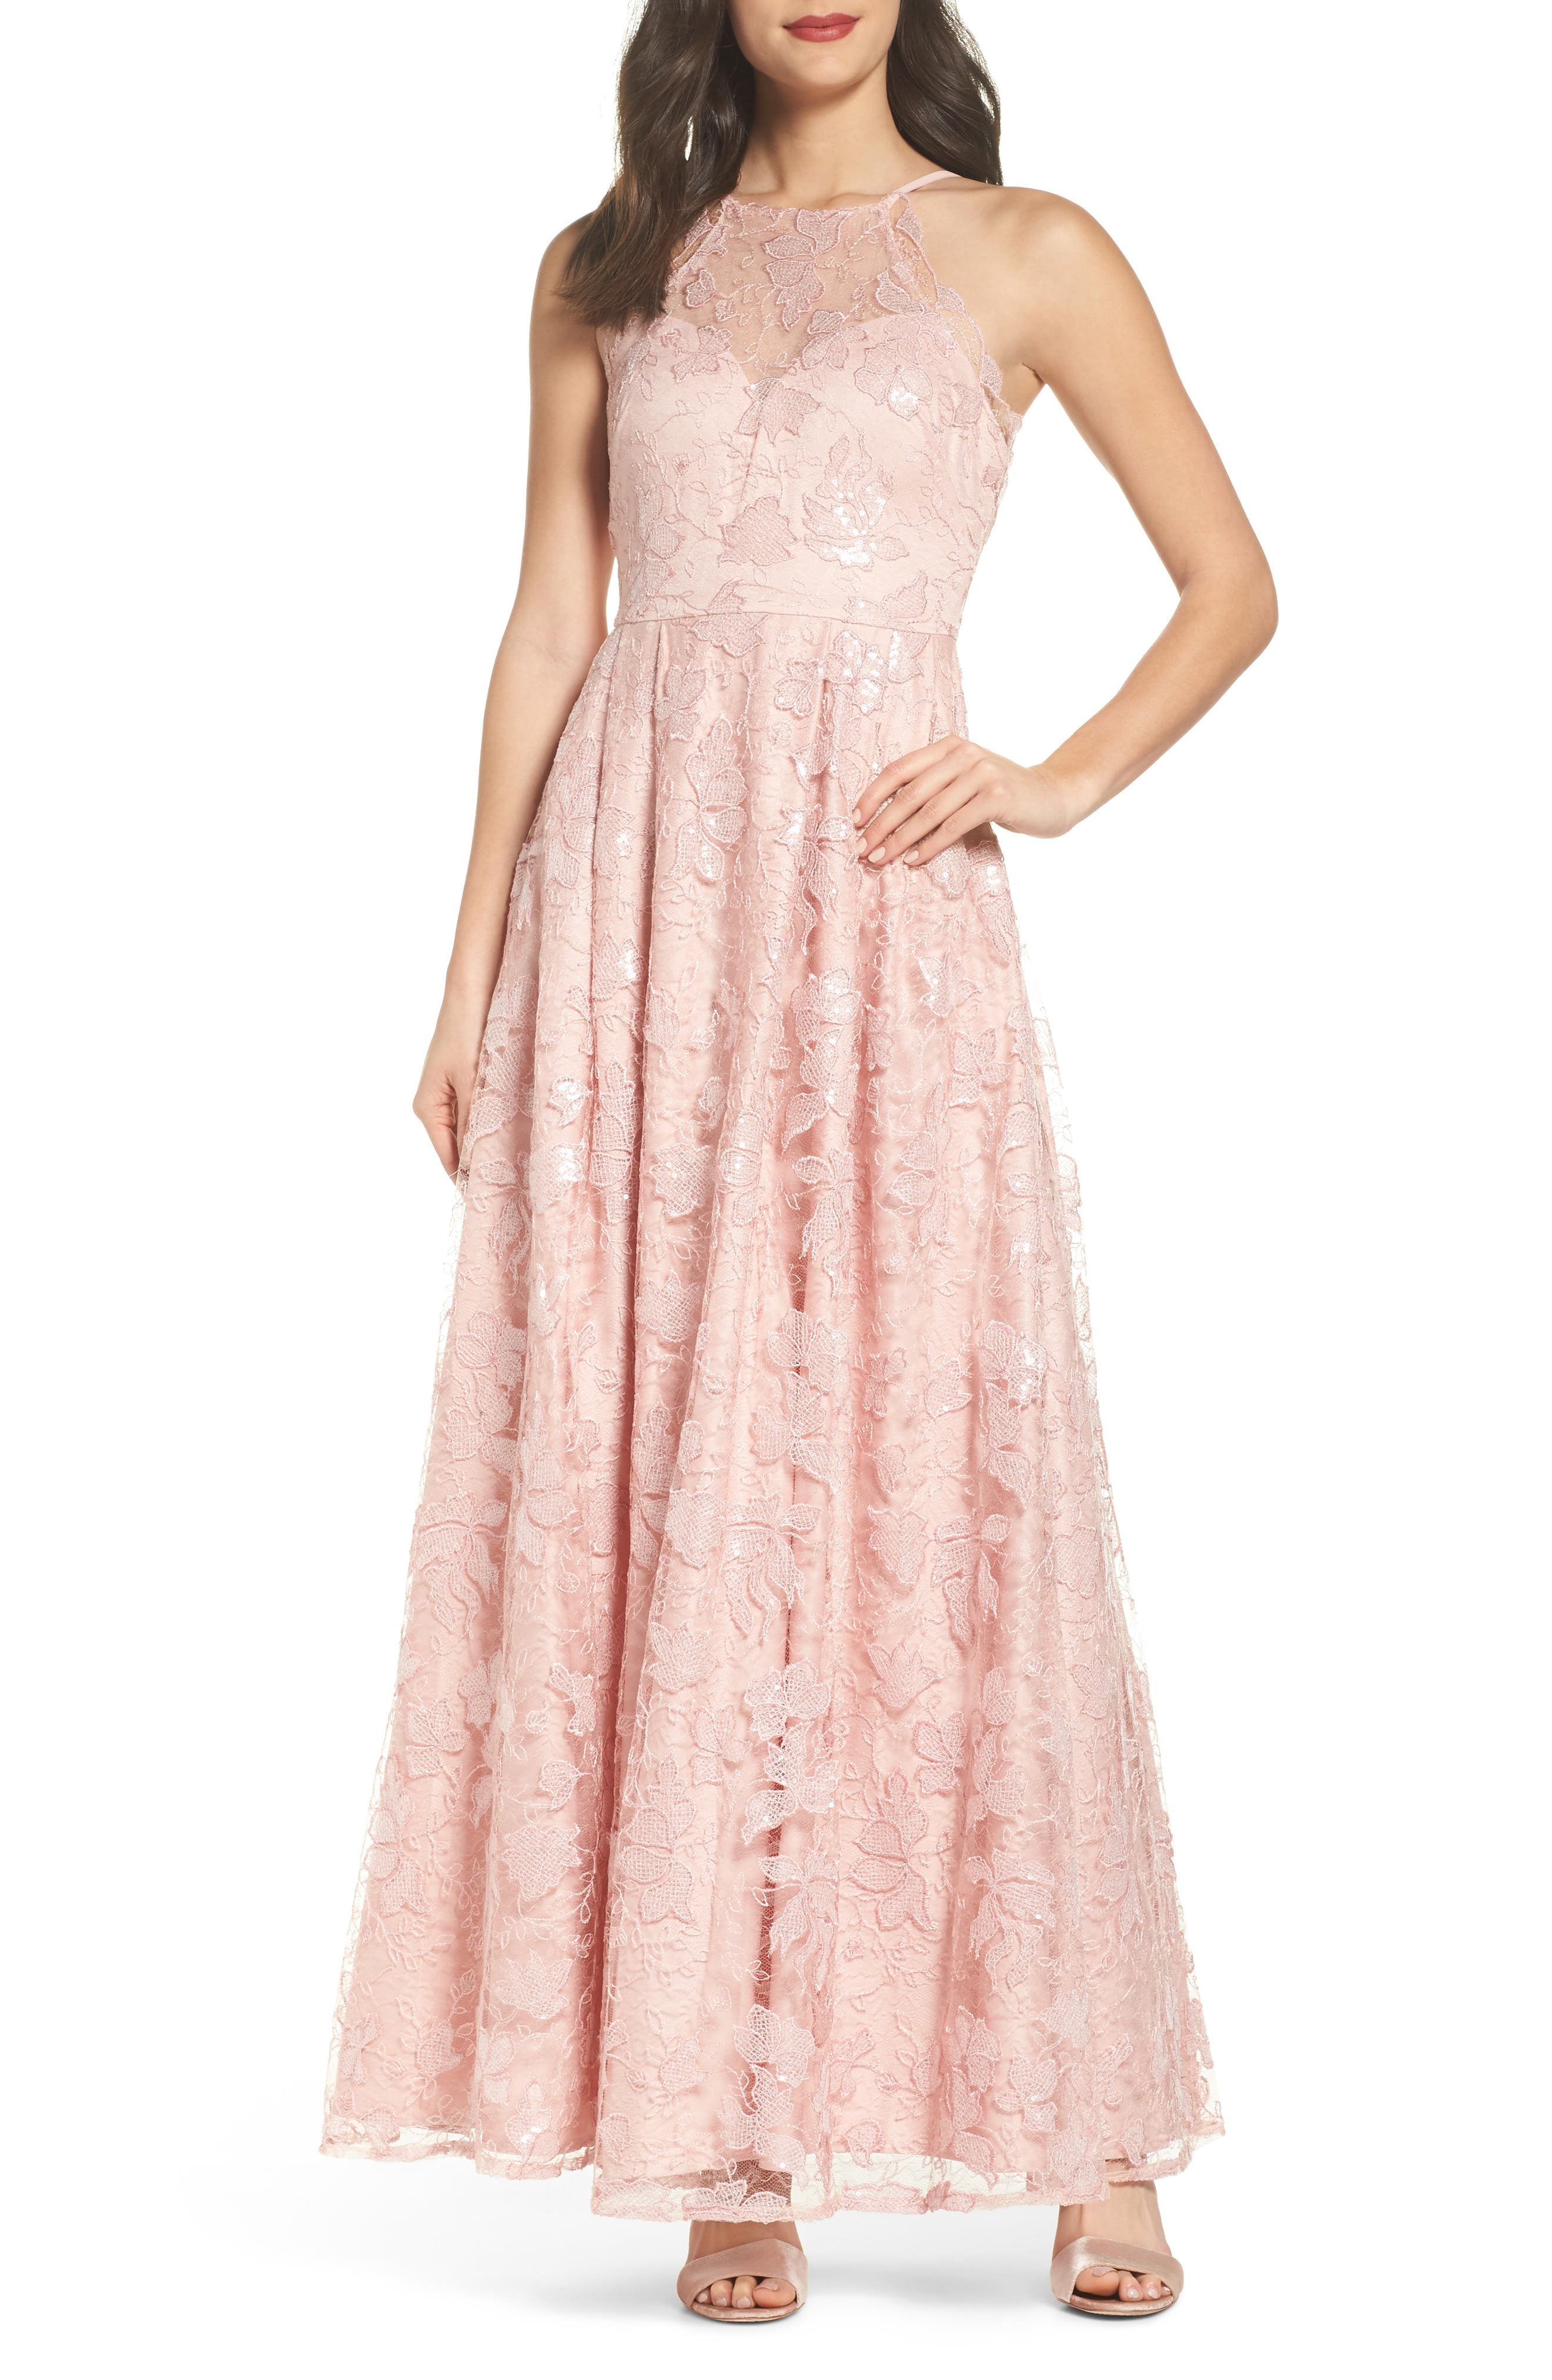 Alternate Image 1 Selected - Morgan & Co. Lace-Up Back Embroidered Gown